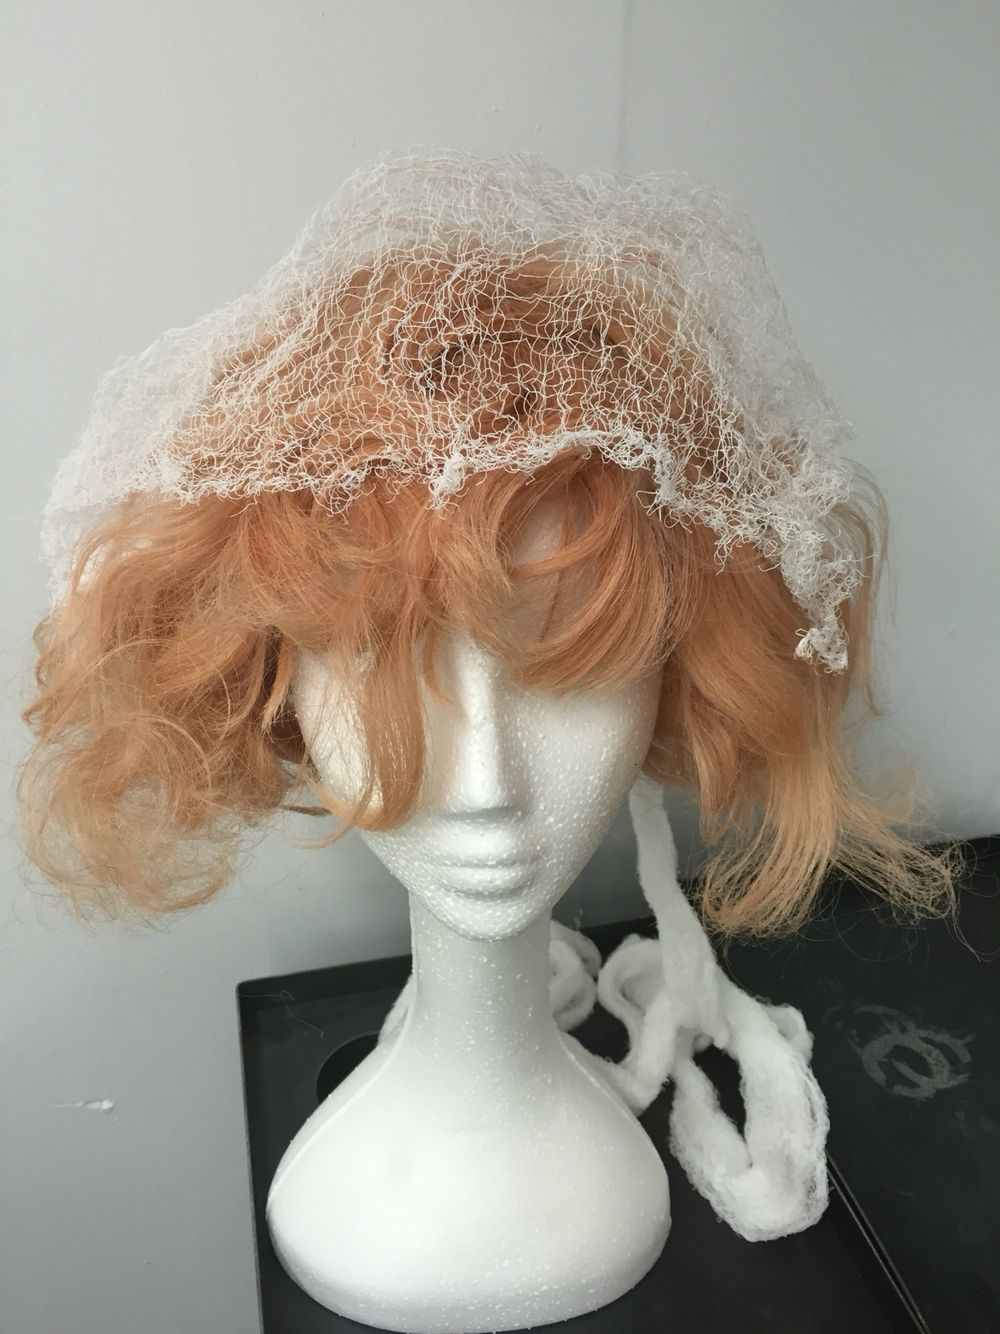 Wig play. Painted by Joseph Mullen